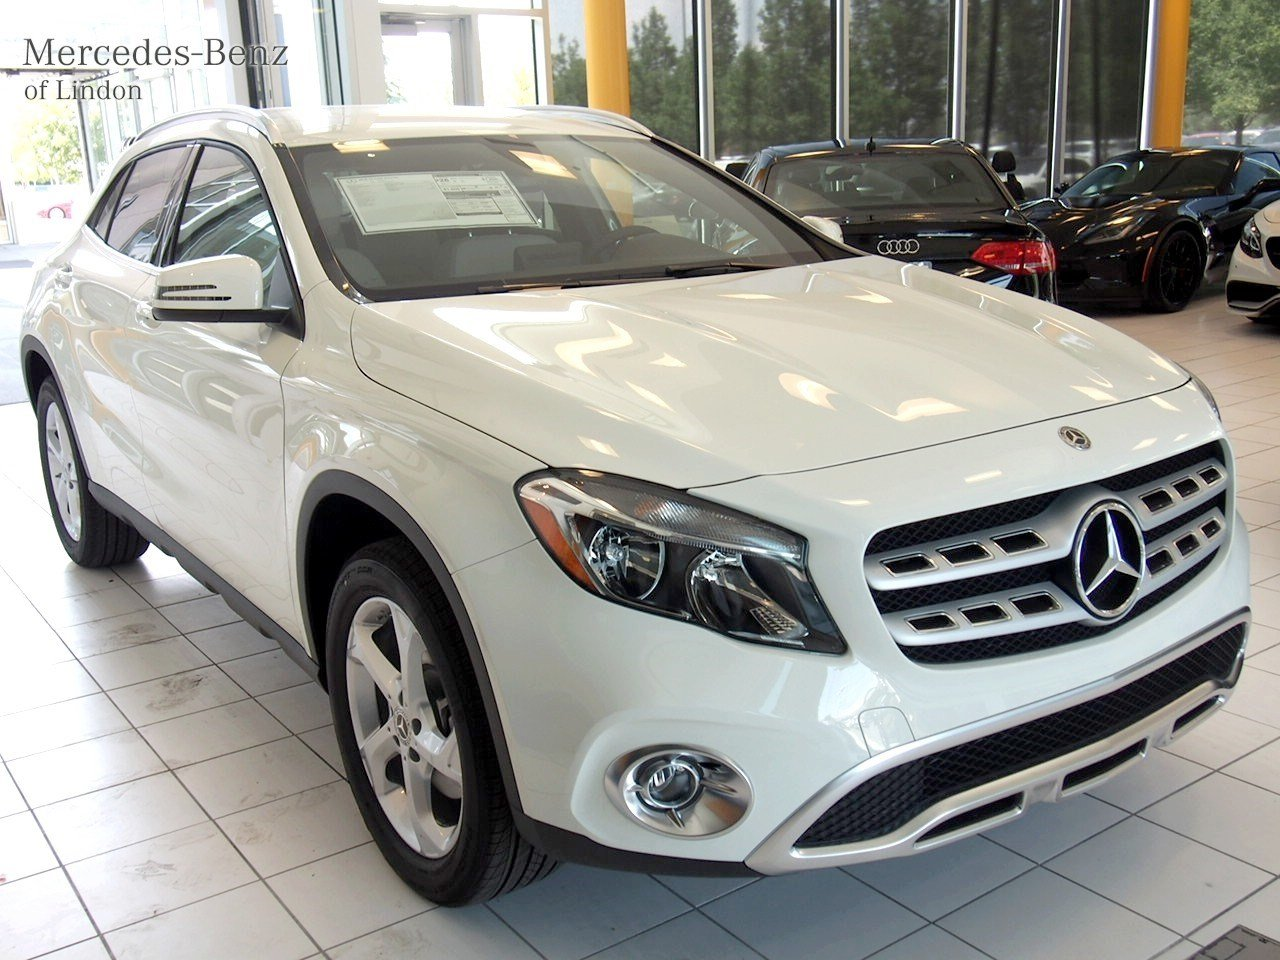 New 2018 mercedes benz gla gla 250 4matic suv in lindon for Mercedes benz gla 250 4matic